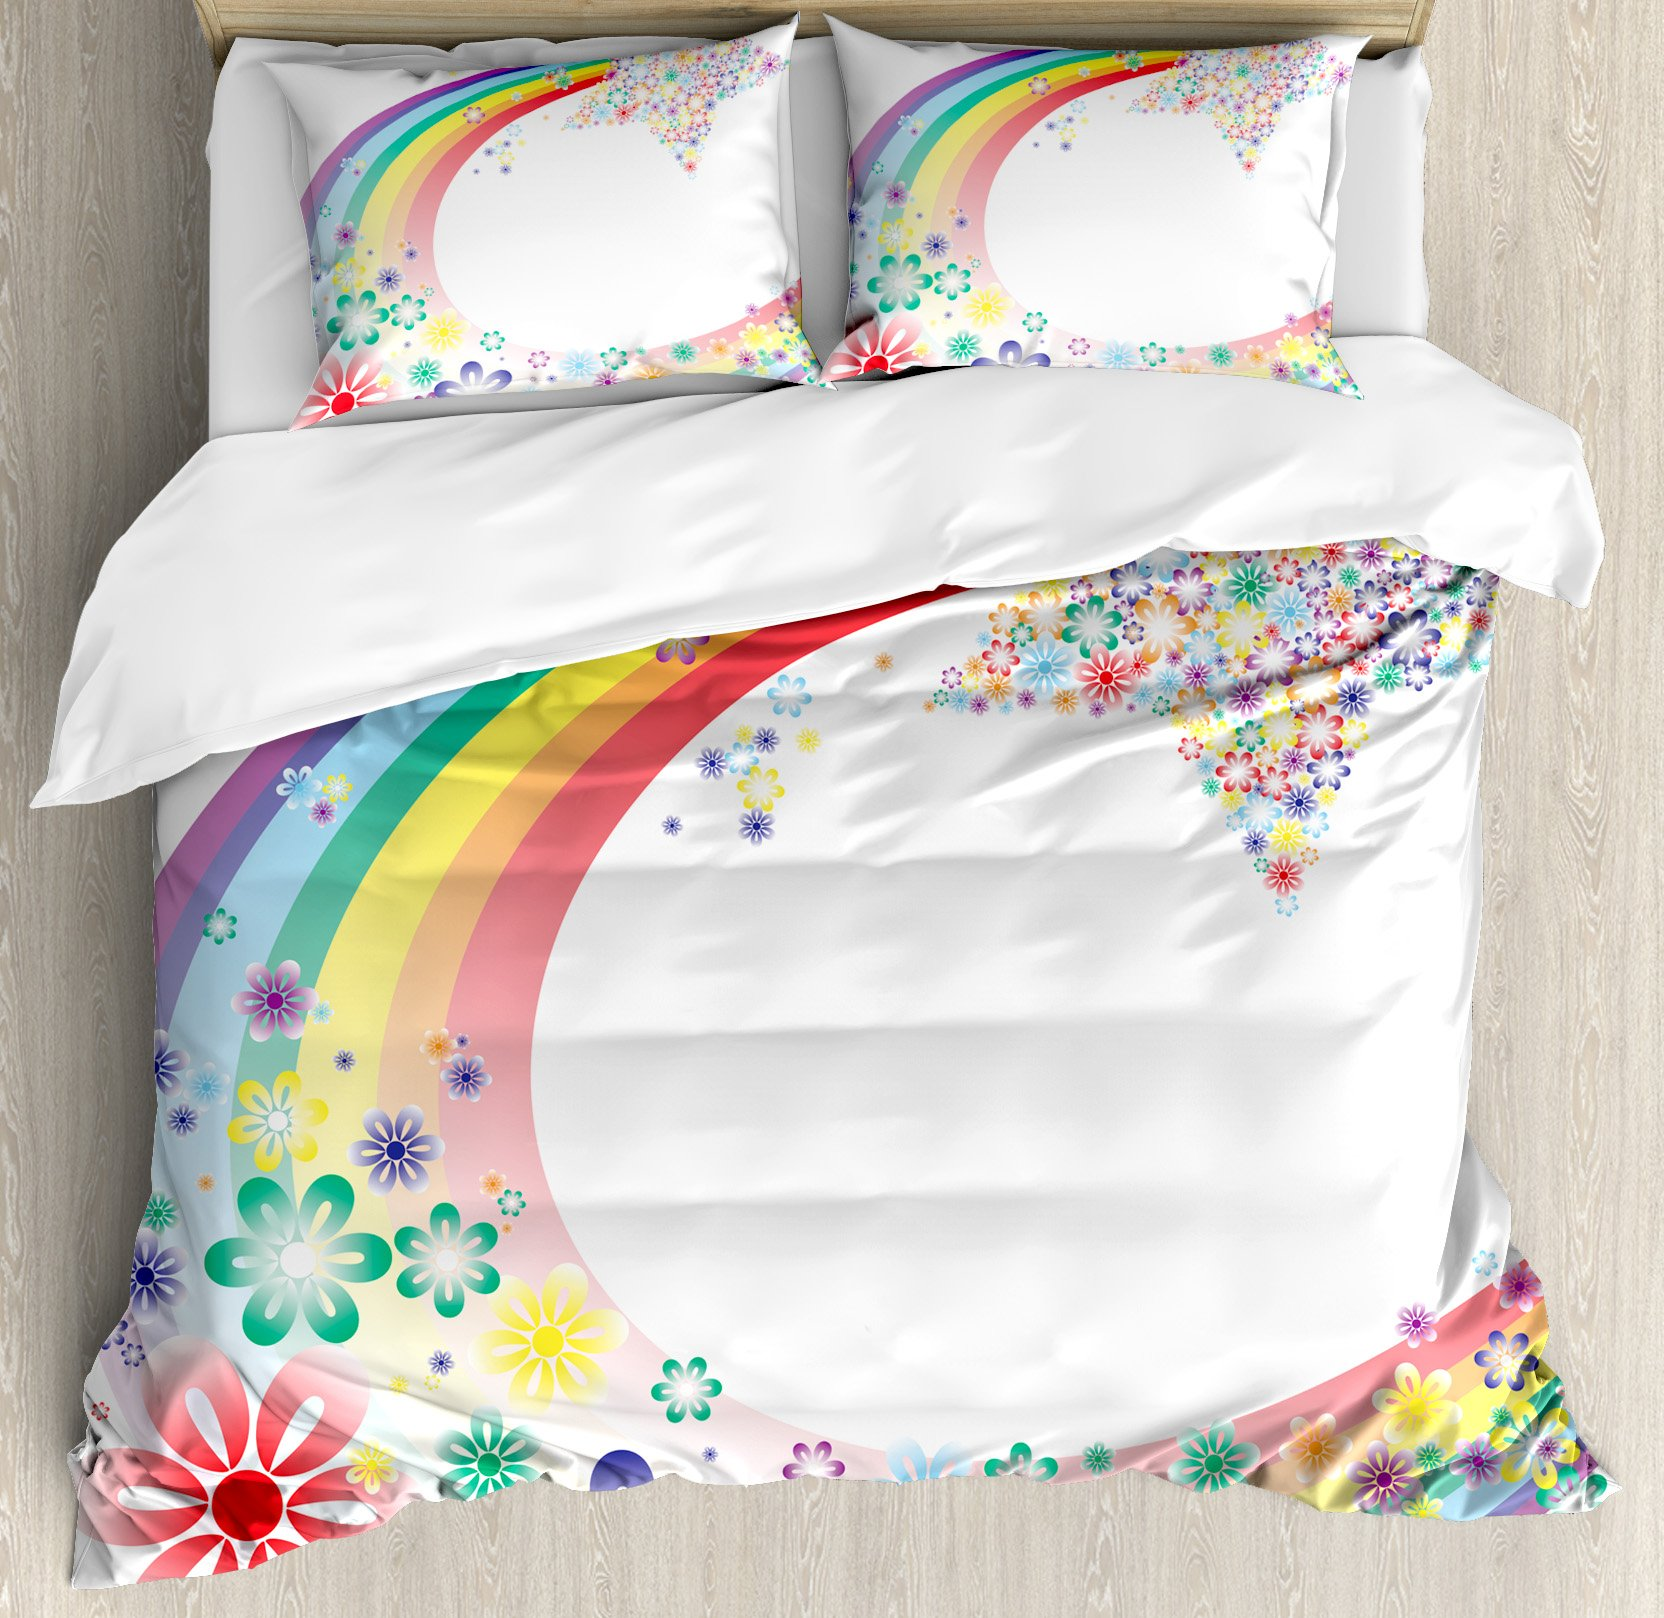 Abstract Home Decor Queen Size Duvet Cover Set by Ambesonne, Abstract Nature Spring Floral Rainbow Stars Flowers Cheerful Fun Design, Decorative 3 Piece Bedding Set with 2 Pillow Shams